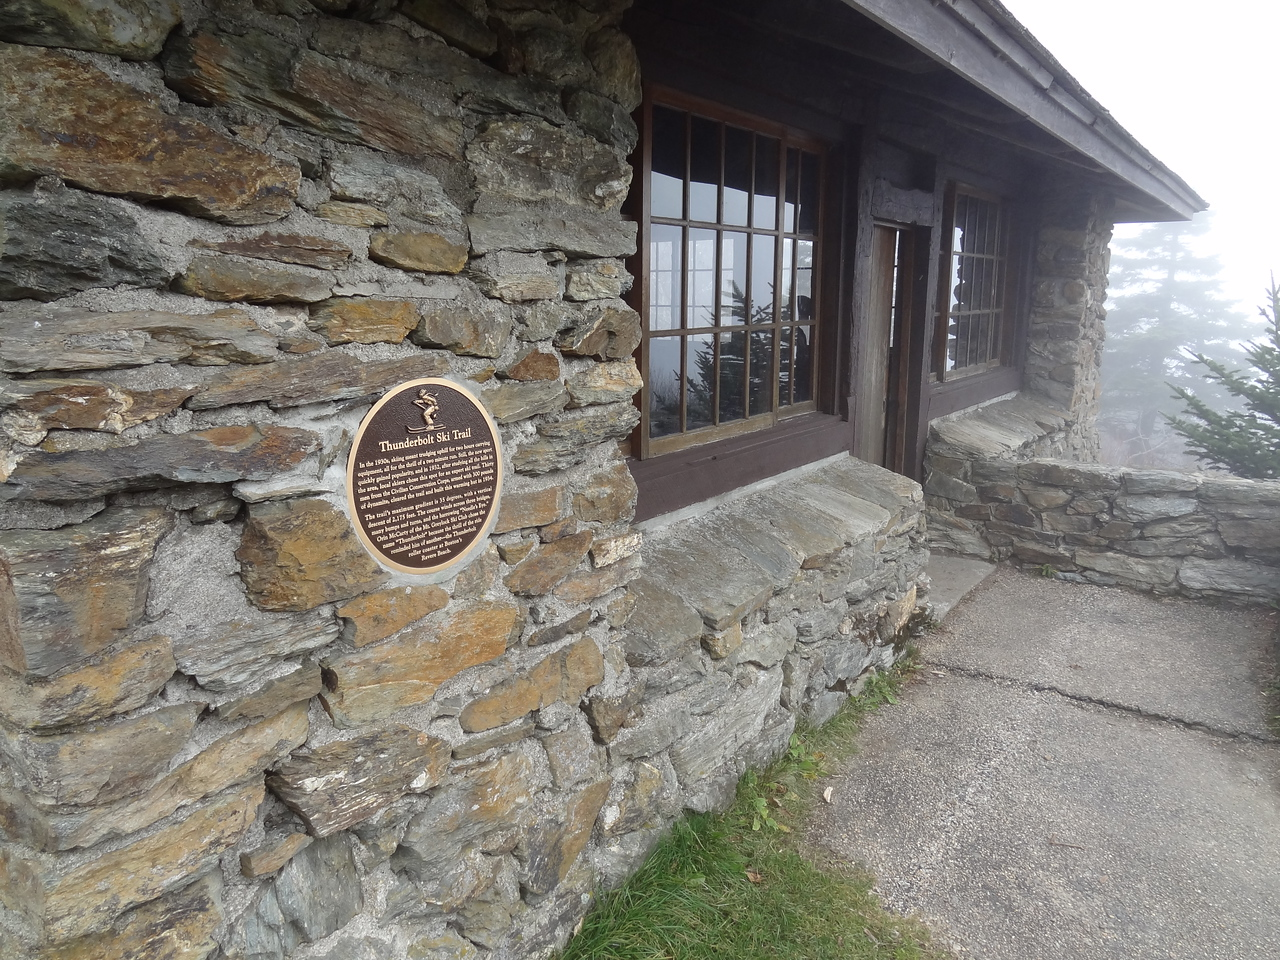 The Thunderbolt Ski Shelter was built in 1940 by the Civilian Conservation Corps atop the summit of Mt. Greylock (3,491 ft.).  The small stone building served as a warming hut for racers who made it to the summit by side-stepping the entire trail.  Here they warmed up and prepared for their run down the Thunderbolt.  The early races were timed by stopwatch.  Later, copper wire was run from the finish line to the summit, and the races were timed by two way radio.  This also added a bit of excitement for the spectators, as immediate results could be known and the times were announced over the loudspeaker as racers crossed the finish.